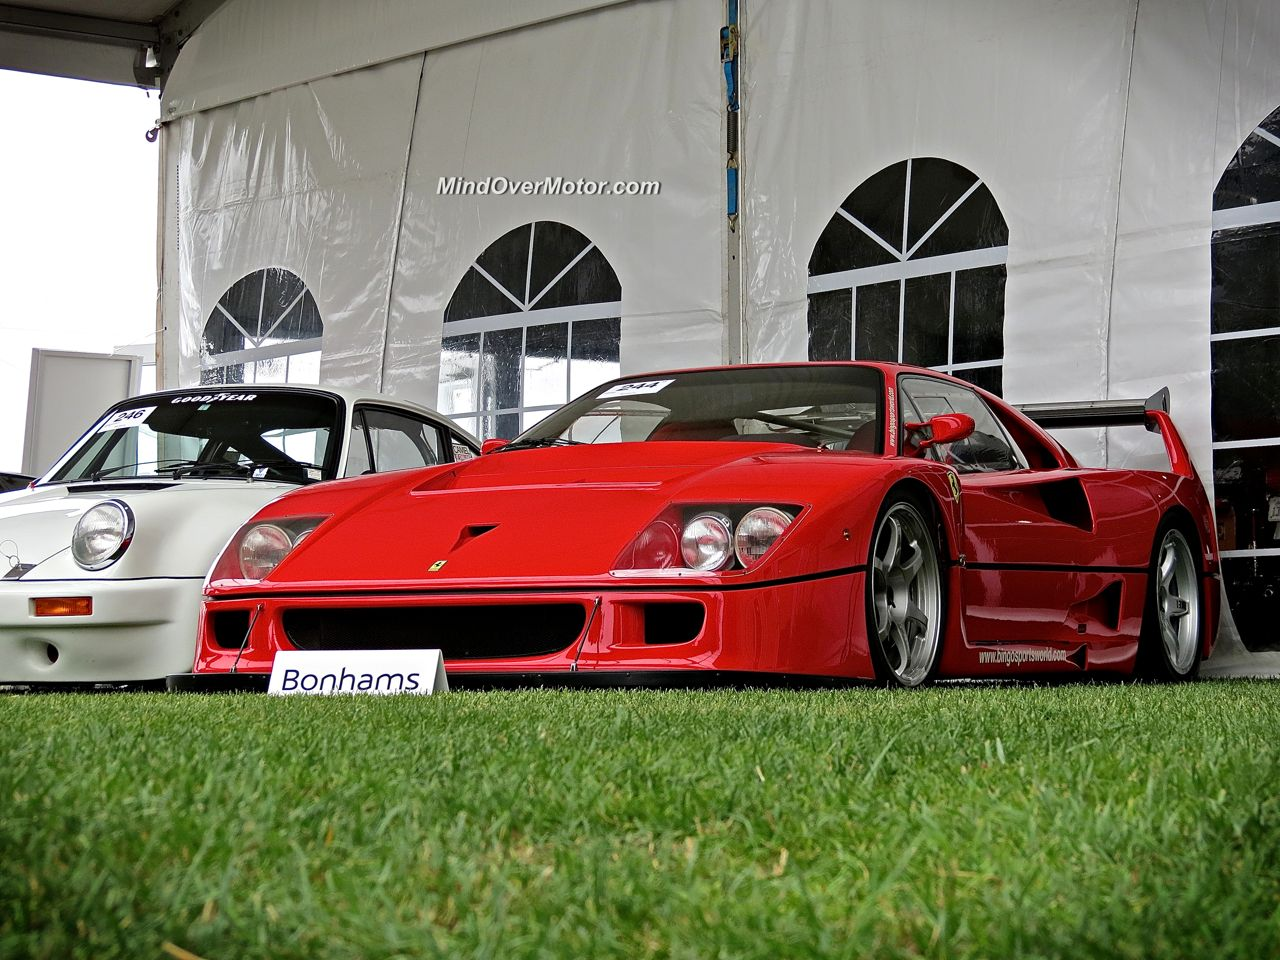 Ferrari F40 LM at Bonhams Auction in Monterey